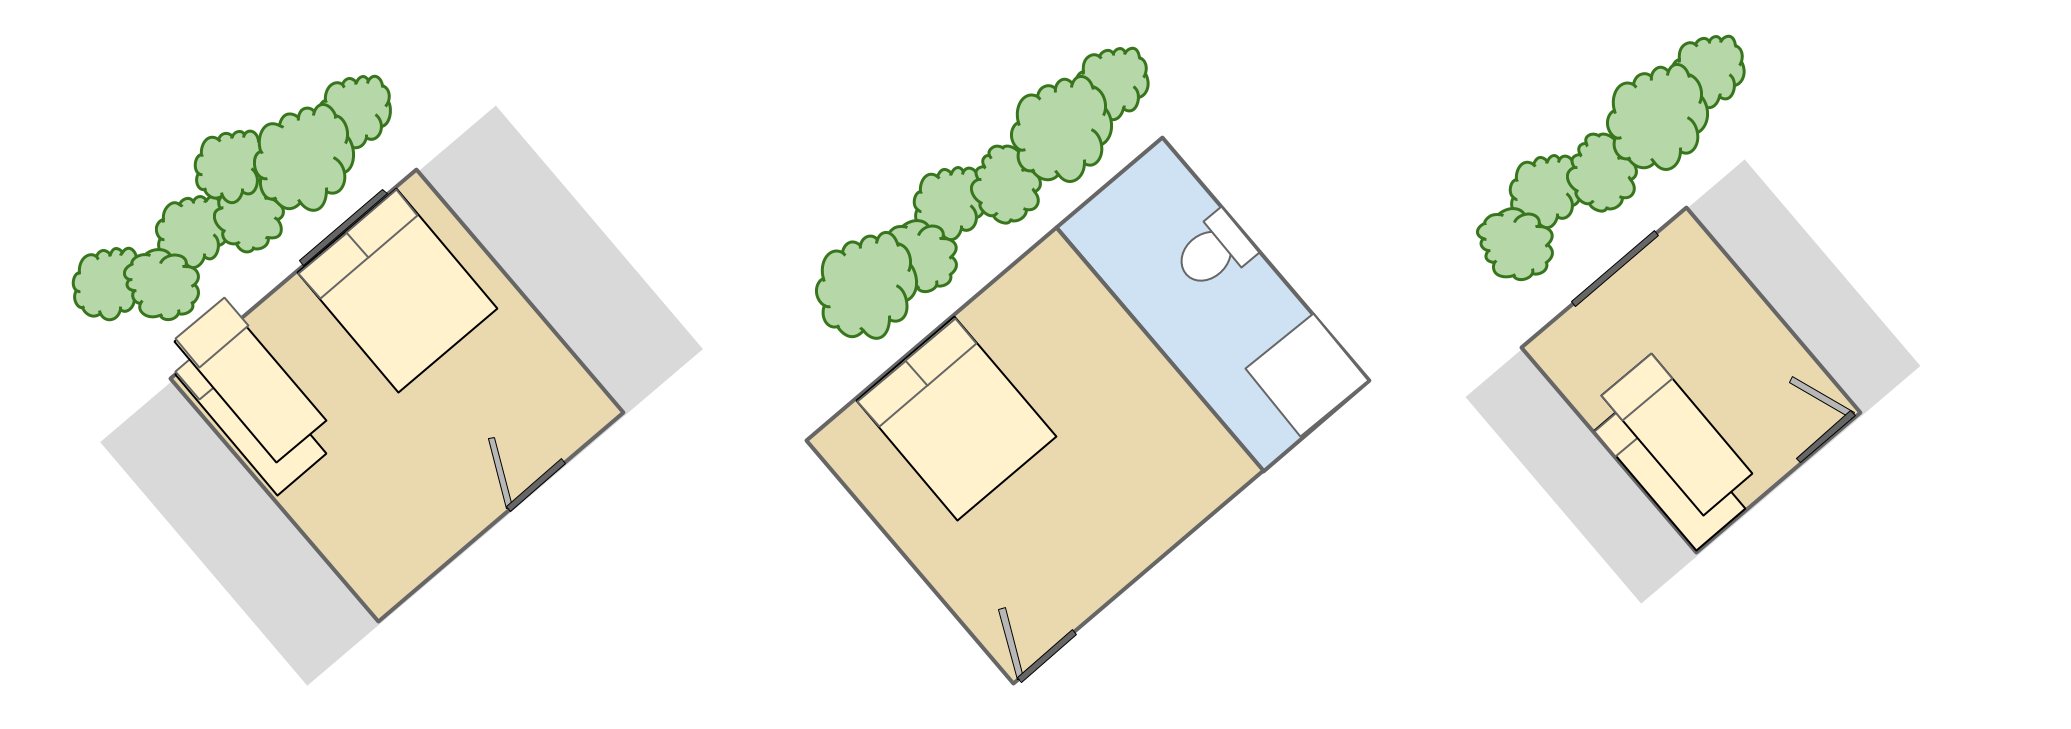 Room layouts - House.png